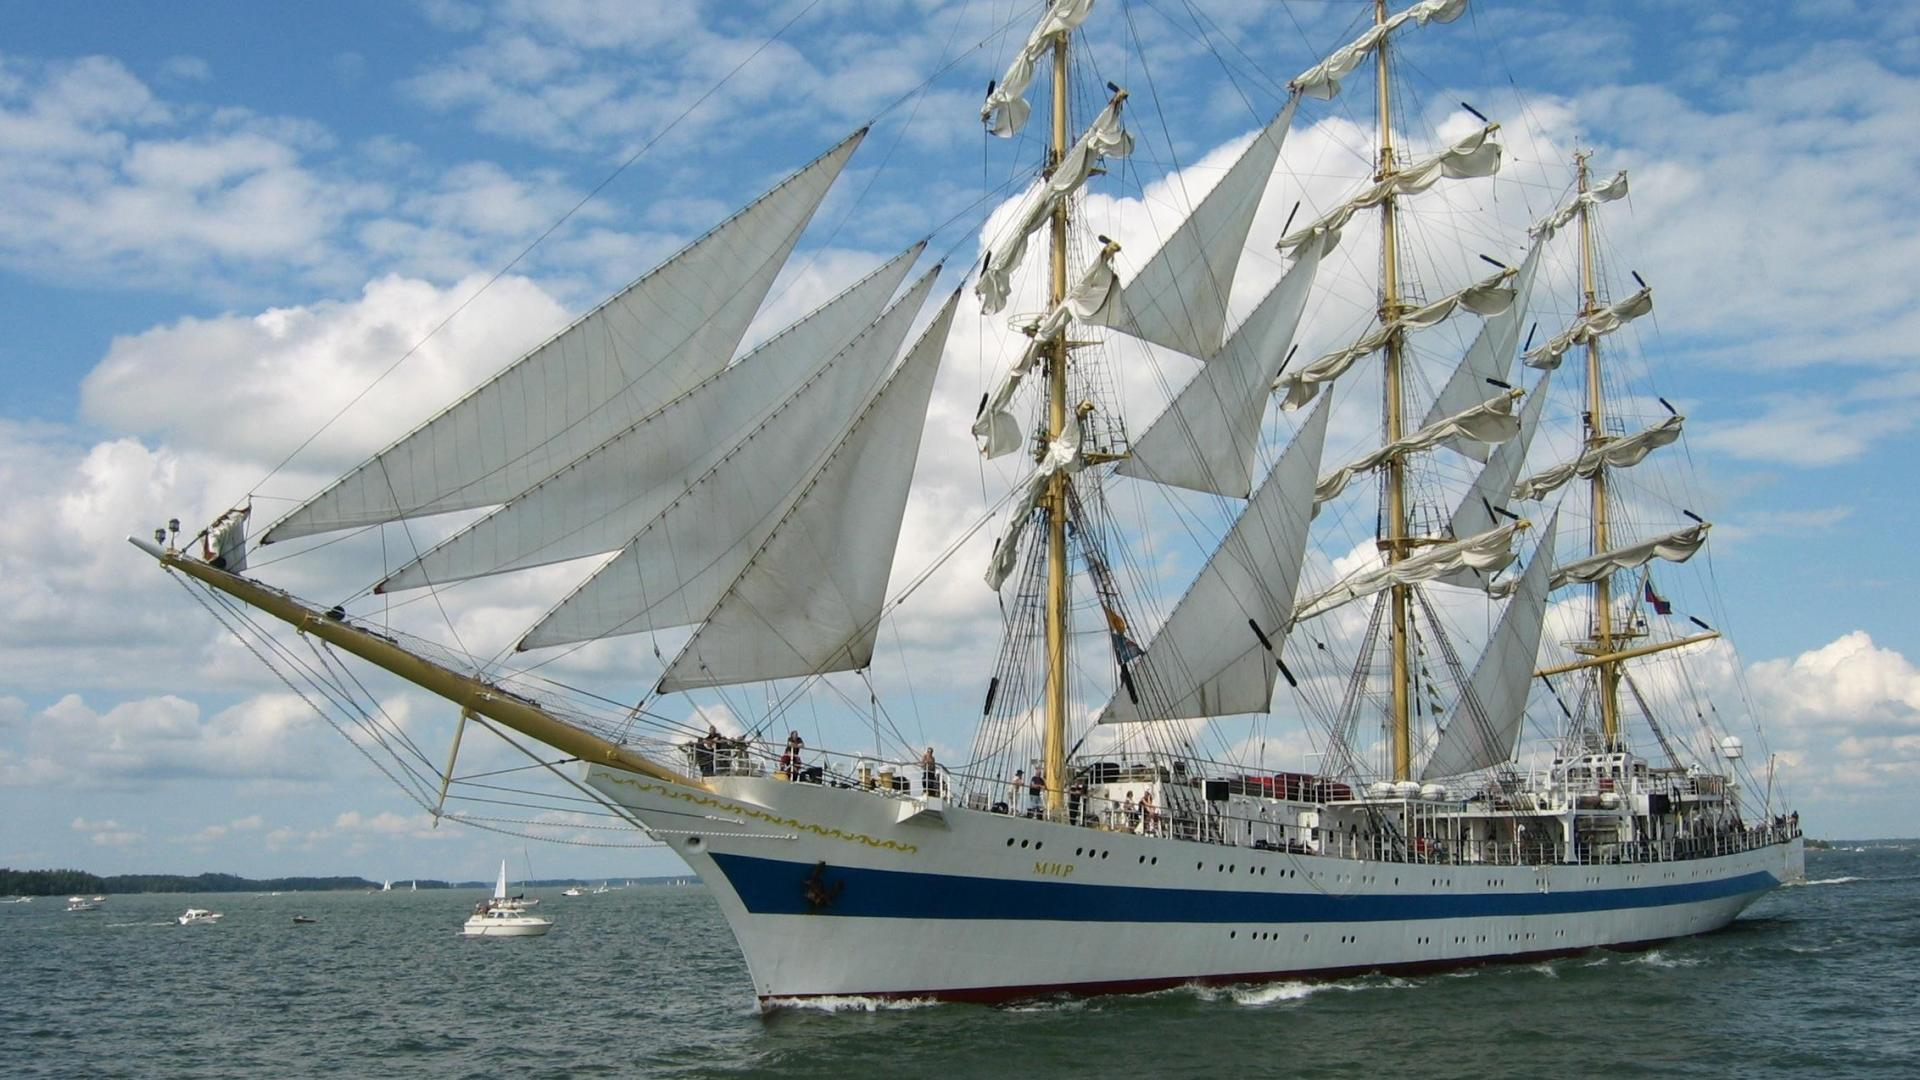 Tall Ships Race wallpaper 671926 1920x1080